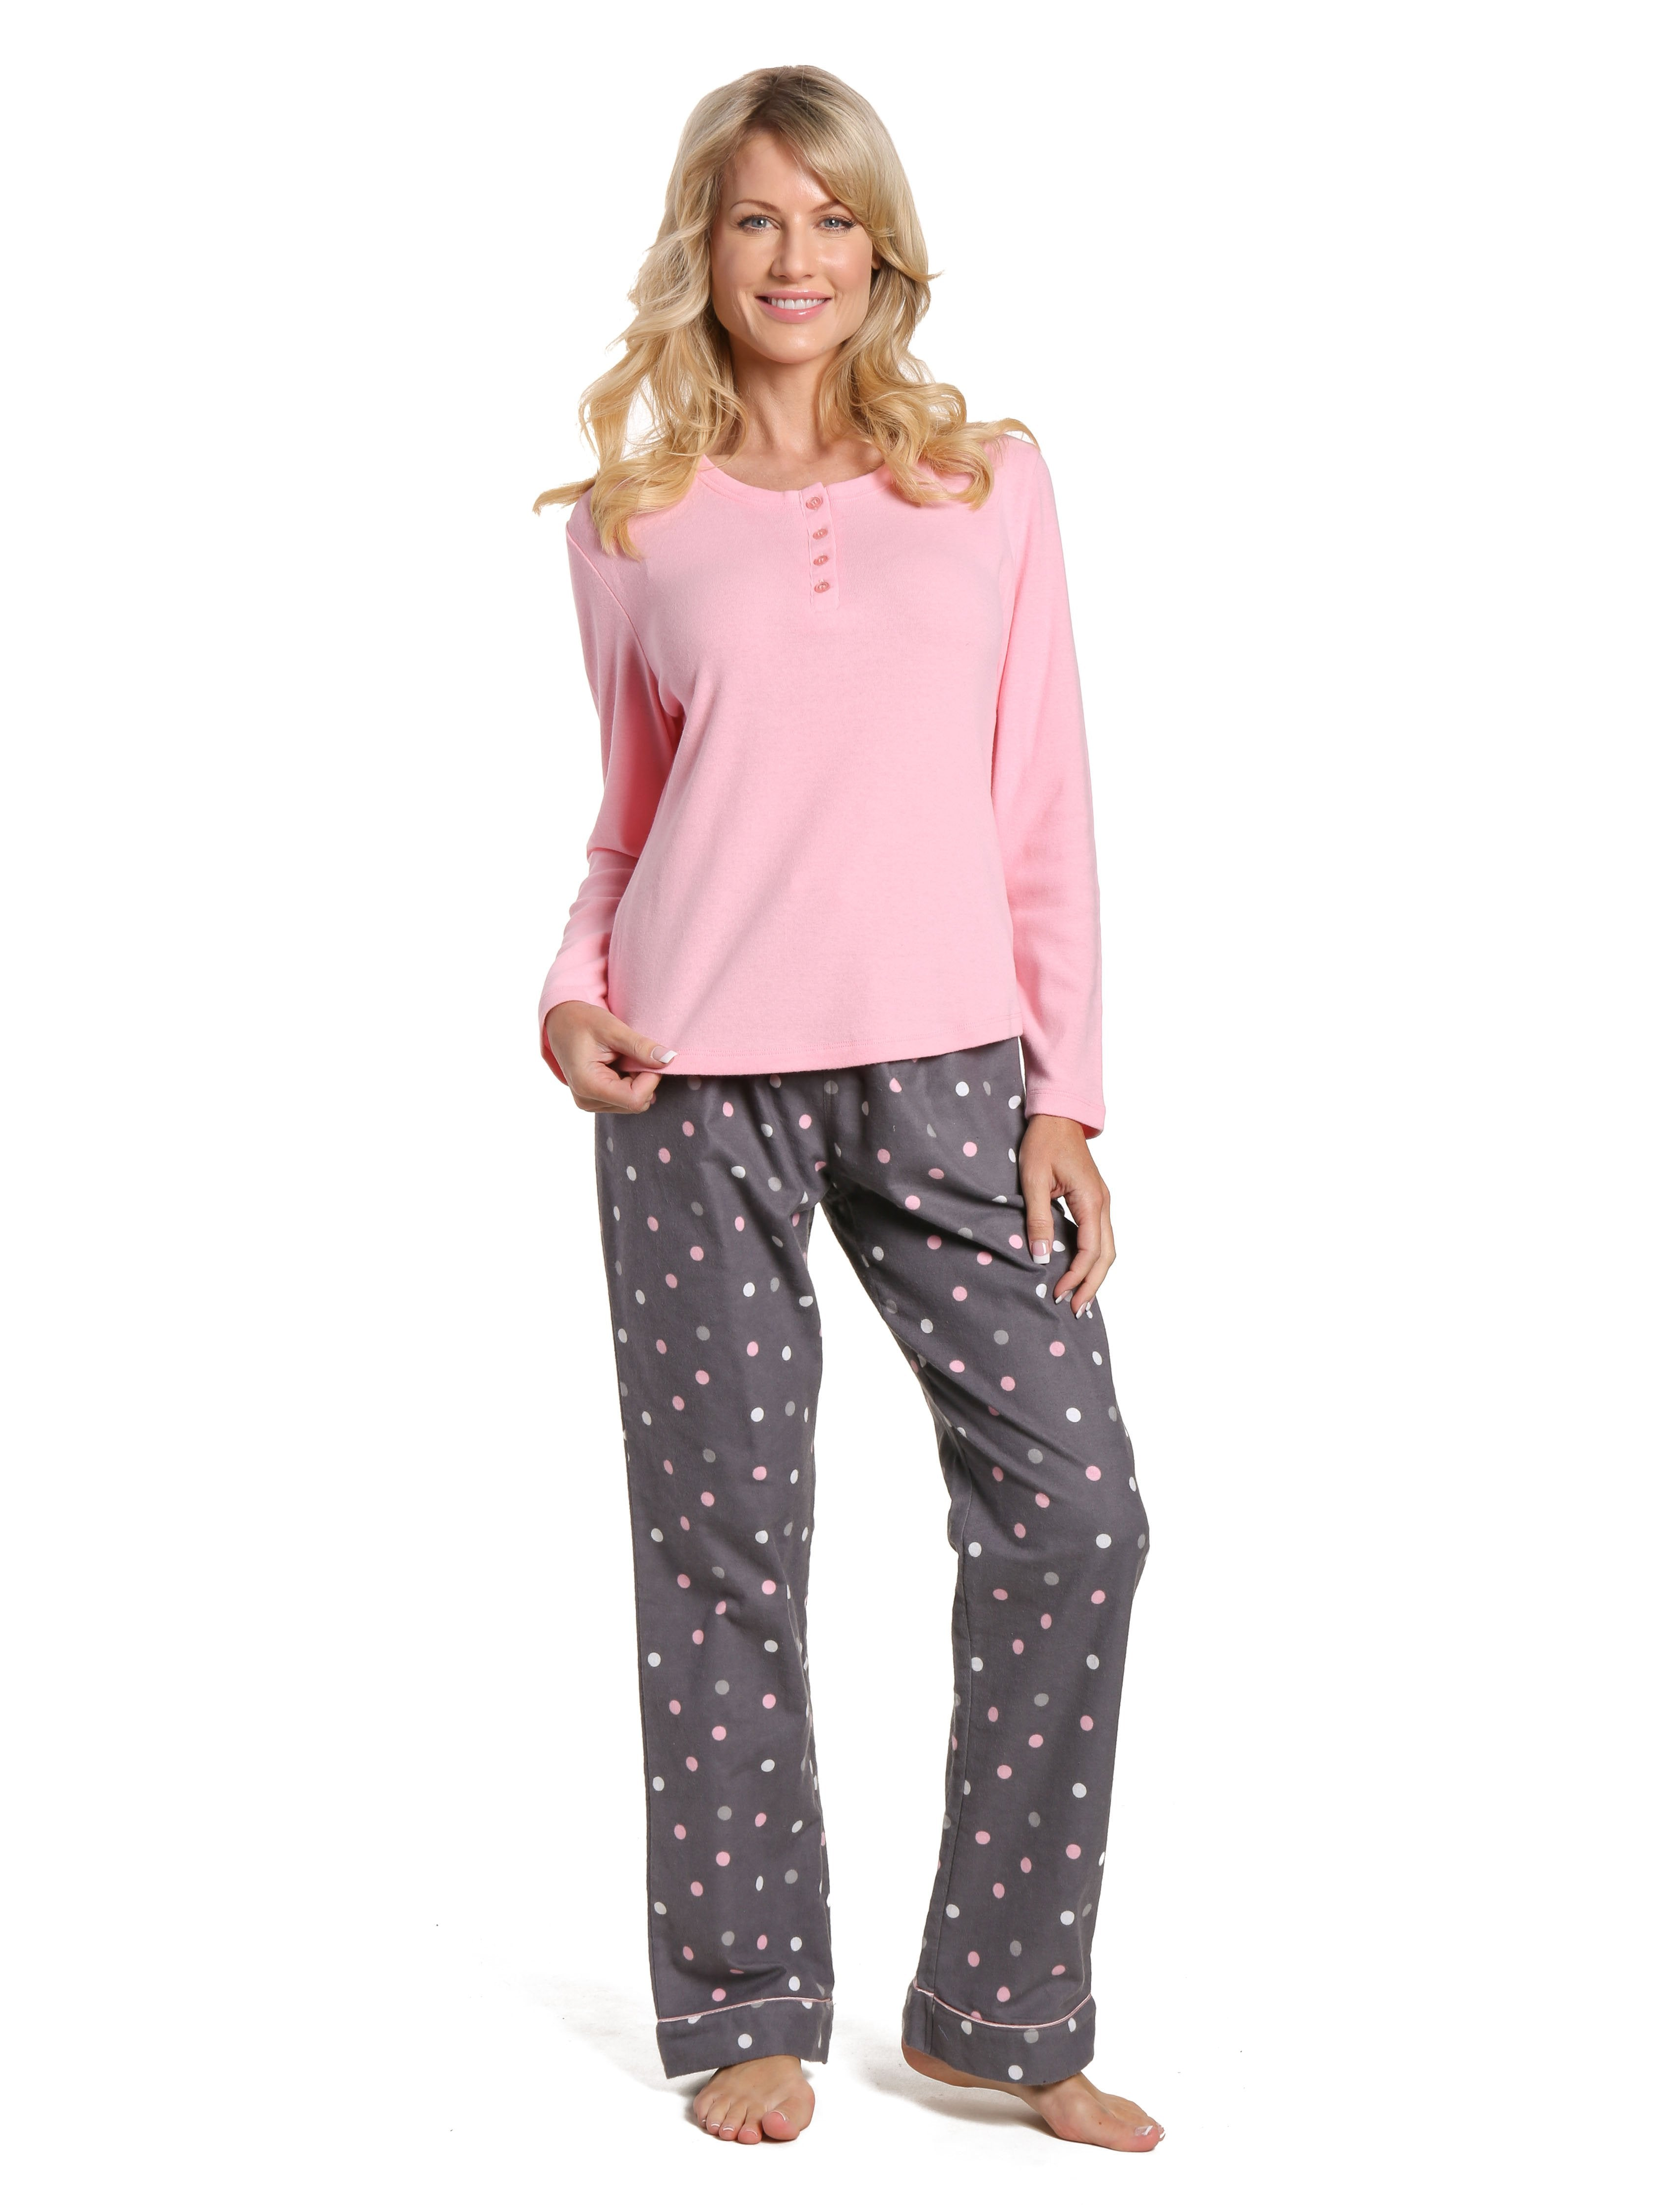 Womens Cotton Flannel Lounge Set with Henley Top - Polka Medley Gray-Pink